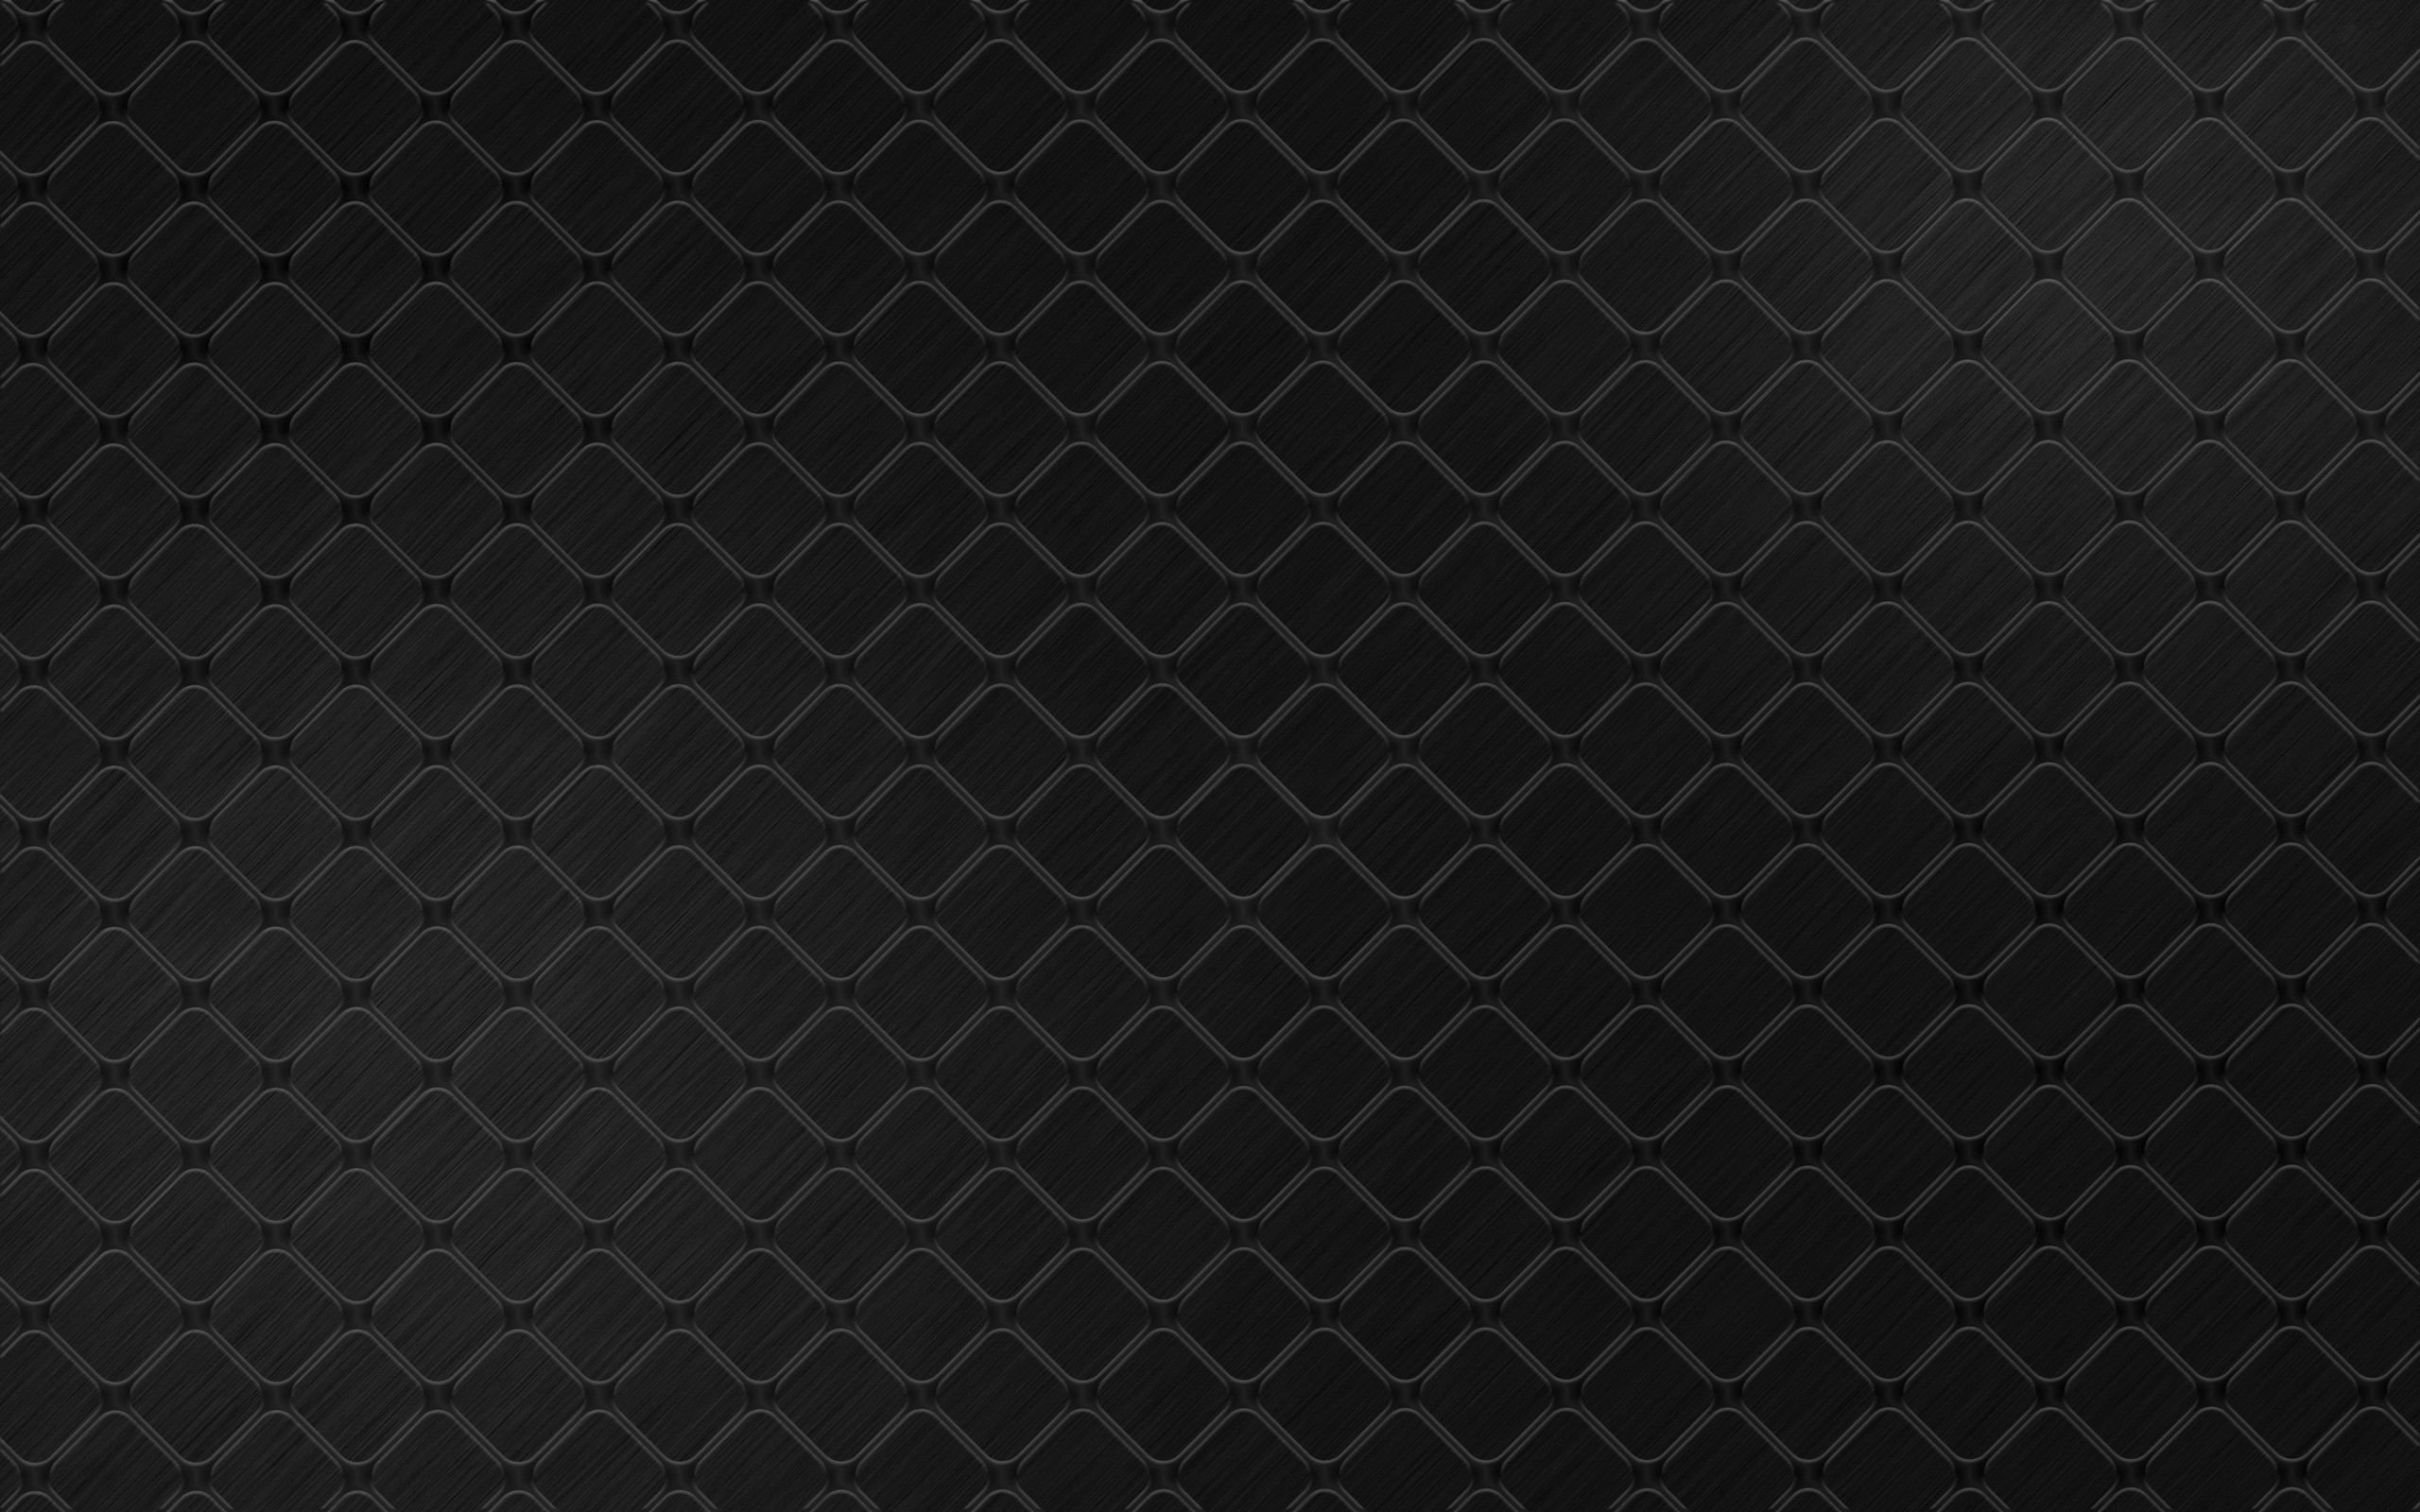 Black Abstract Grid Wallpaper 5804